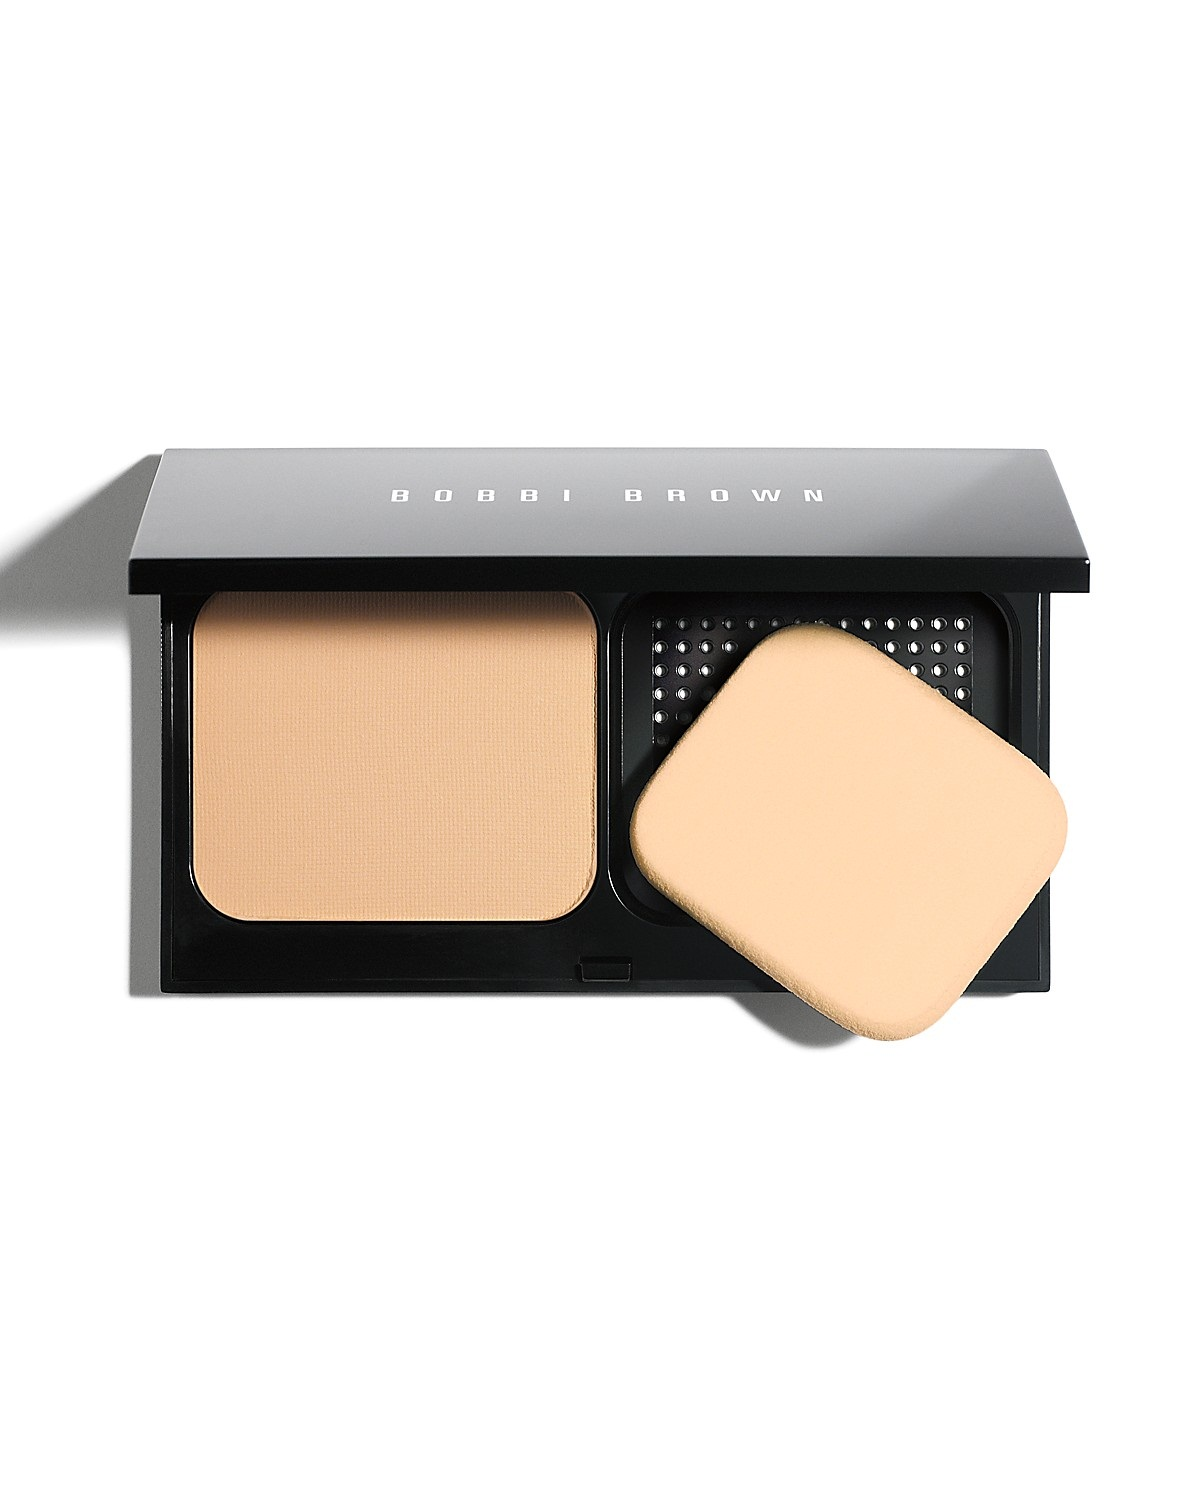 Bobbi Brown Illuiminating Finish Powder Compact Foundation